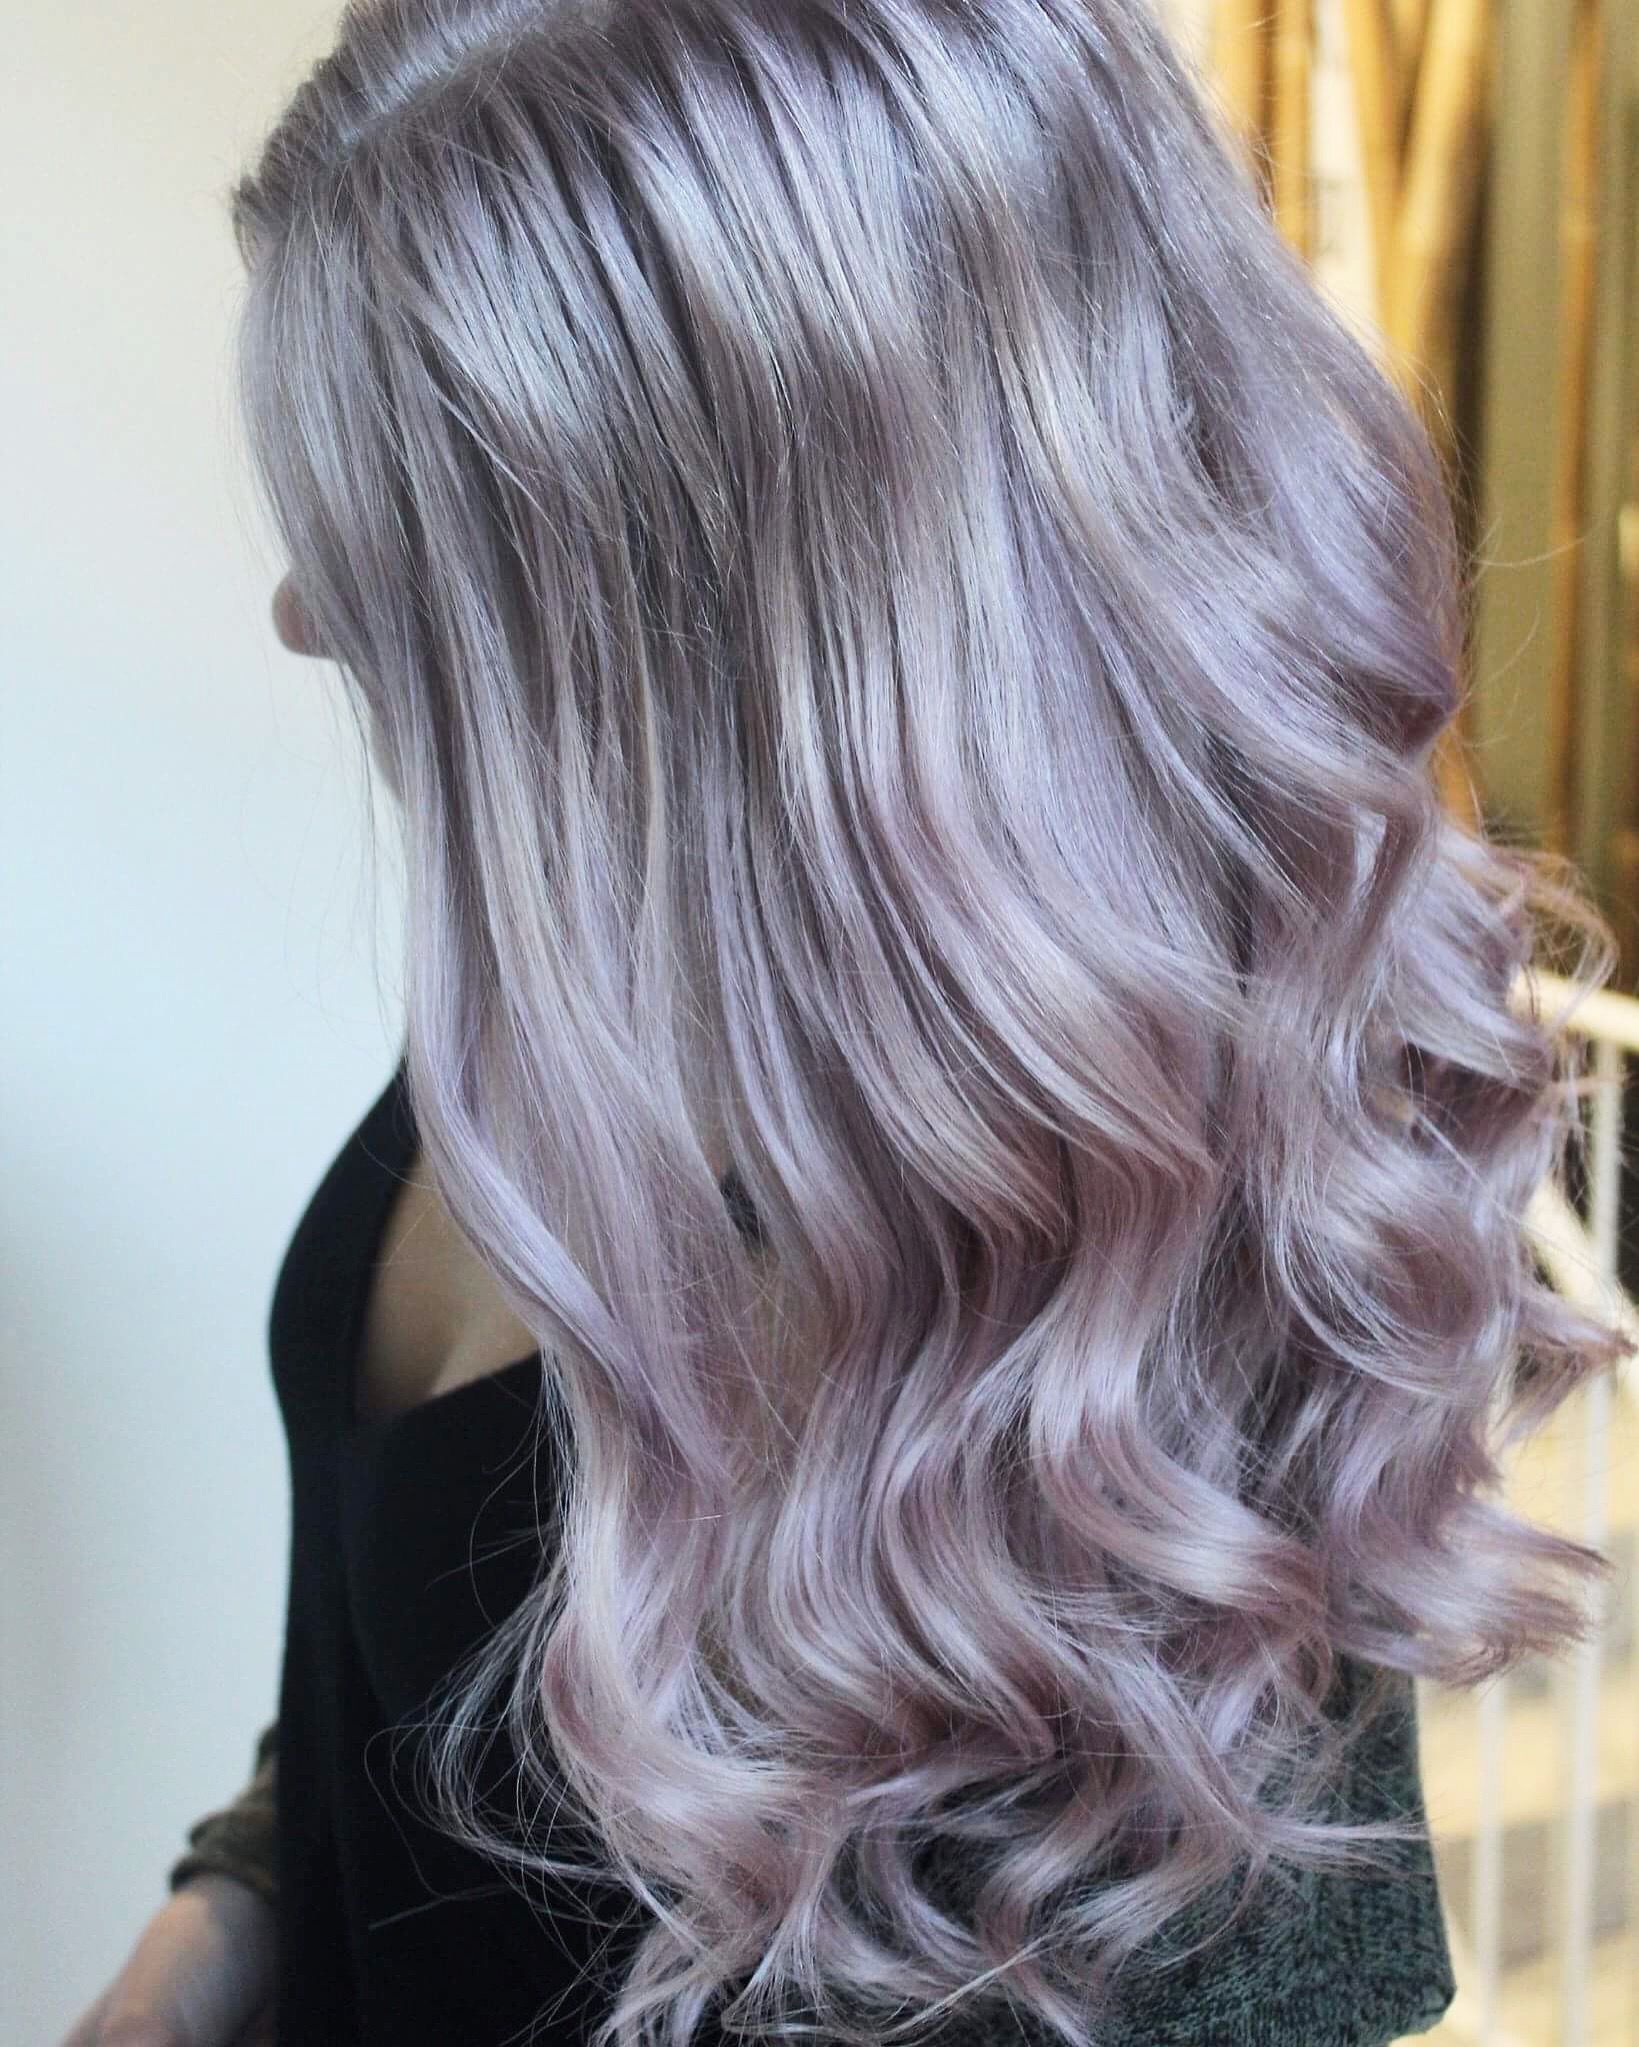 #hair #pastelhair #silverhair  Instagram:hairbyjessapple